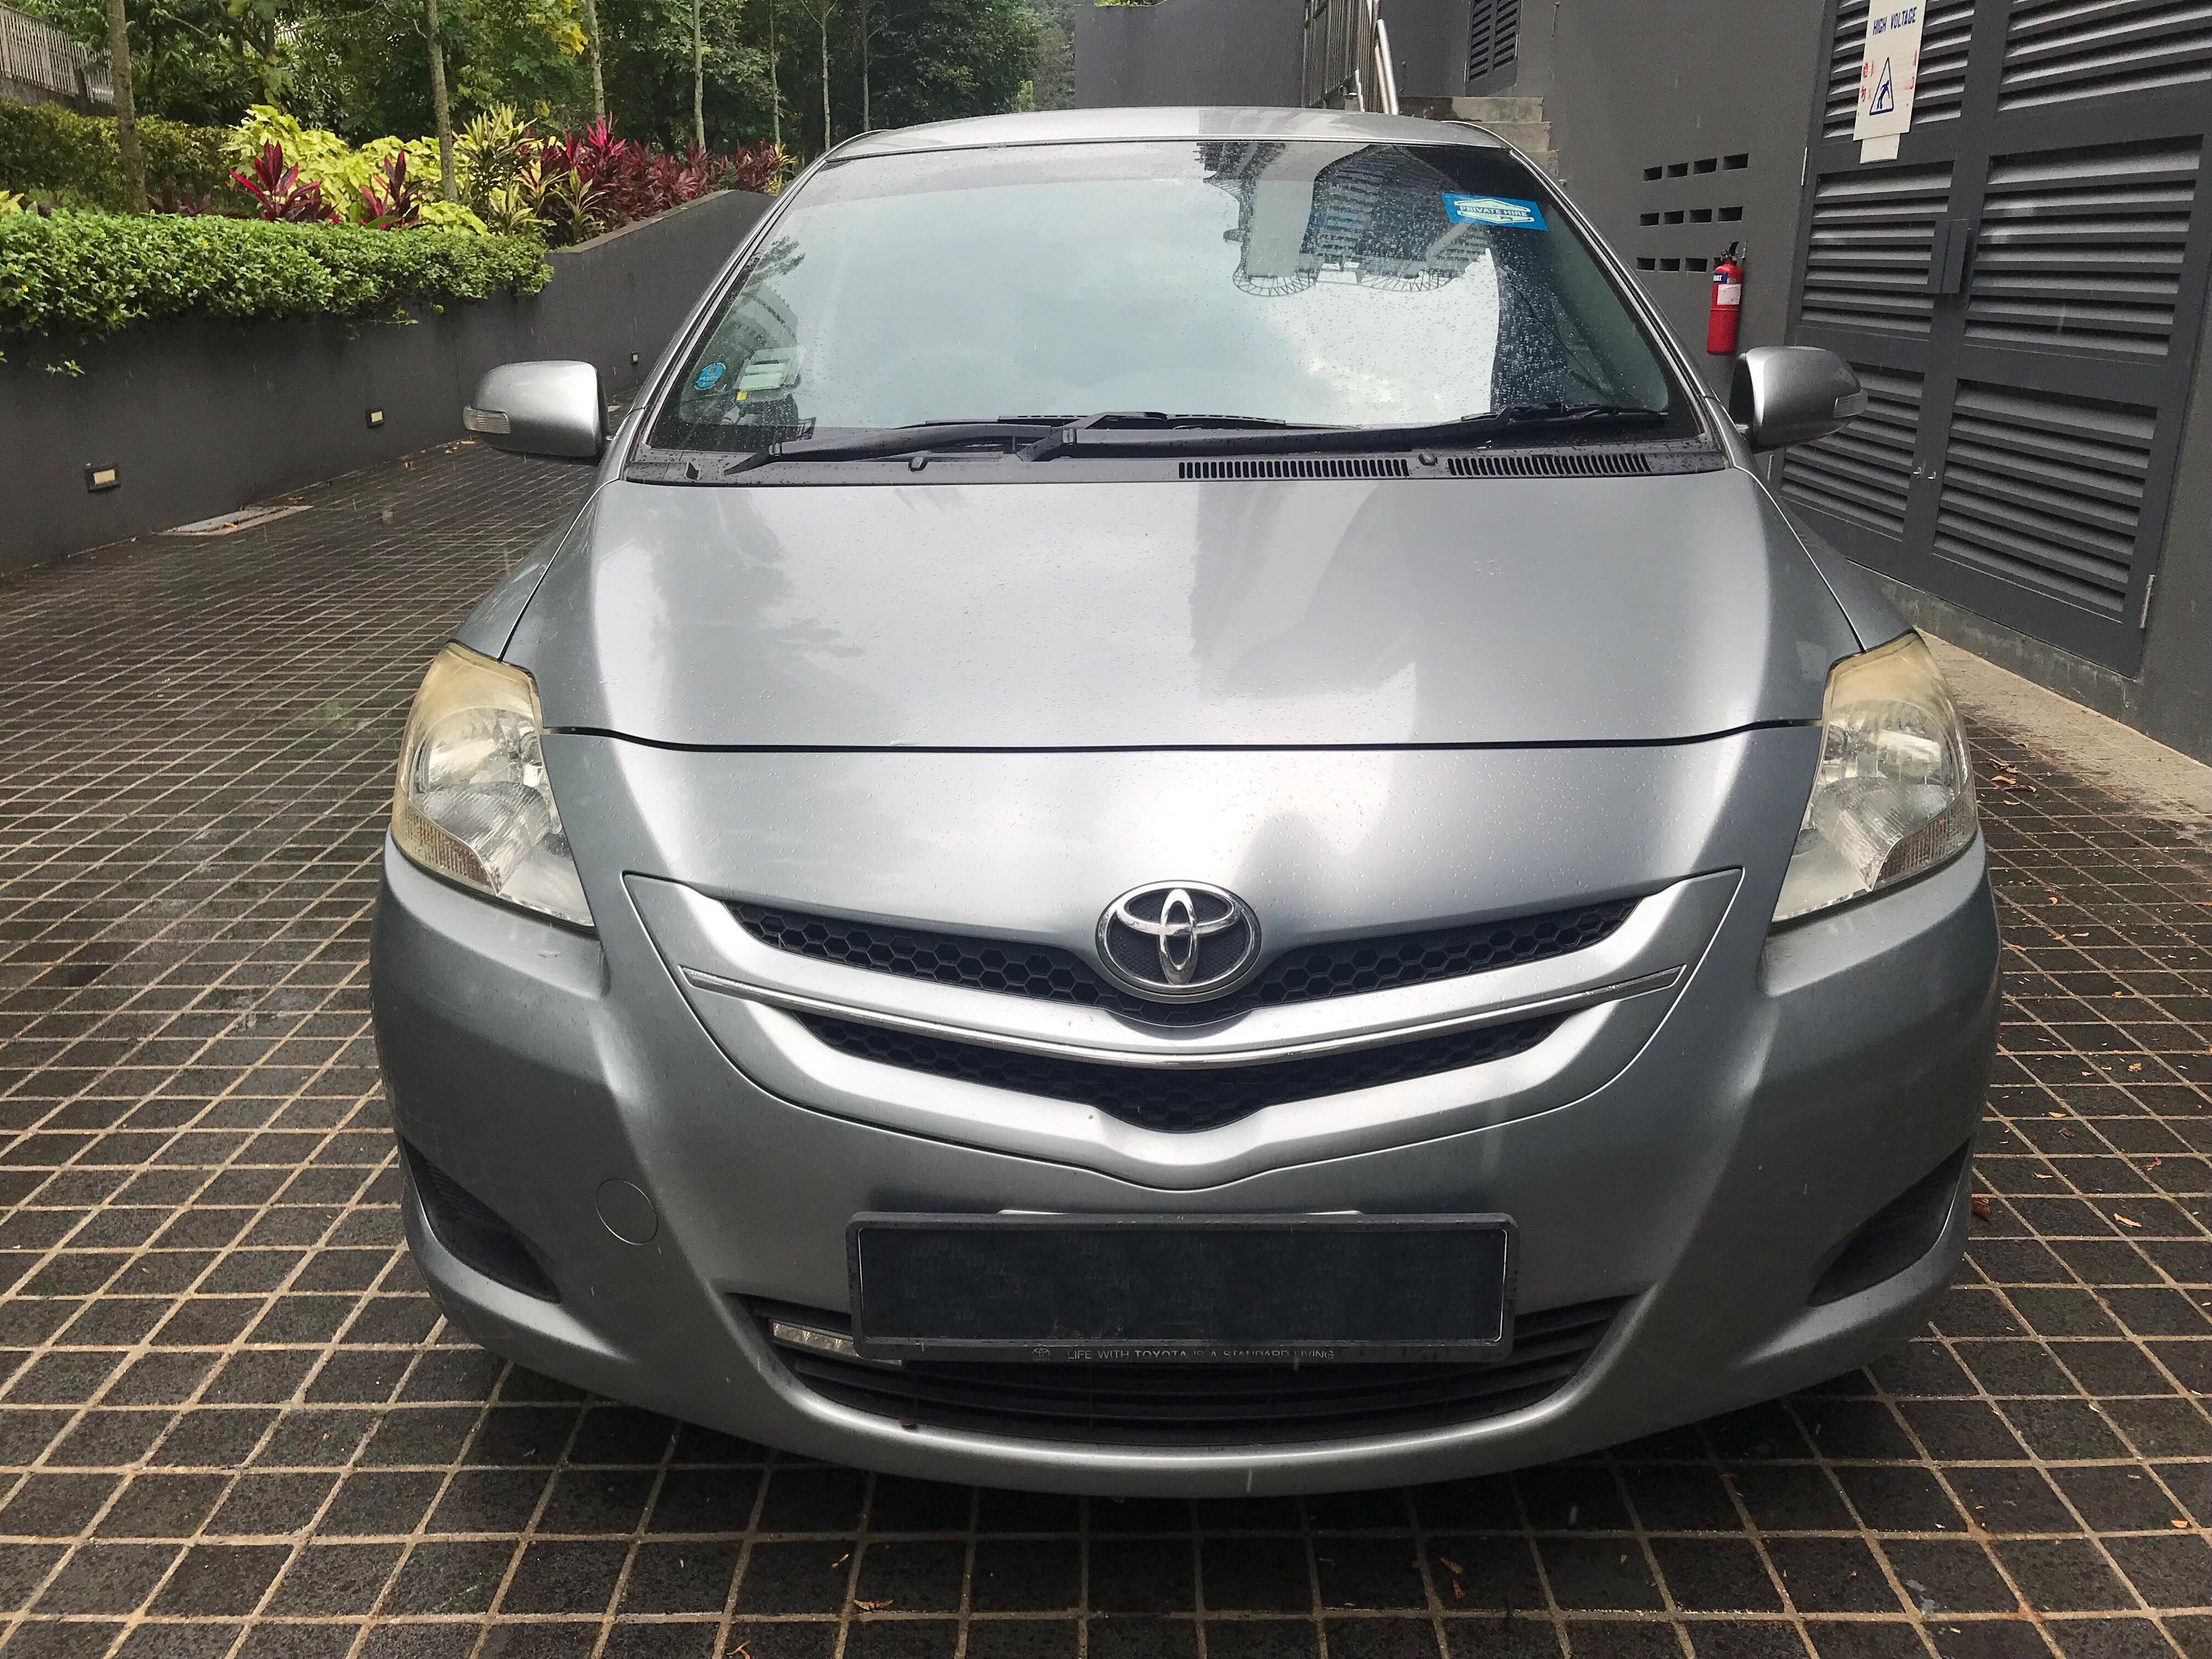 SPECIAL PROMO Toyota Vios 1.5 Manual , Cars, Vehicle Rentals on Carousell